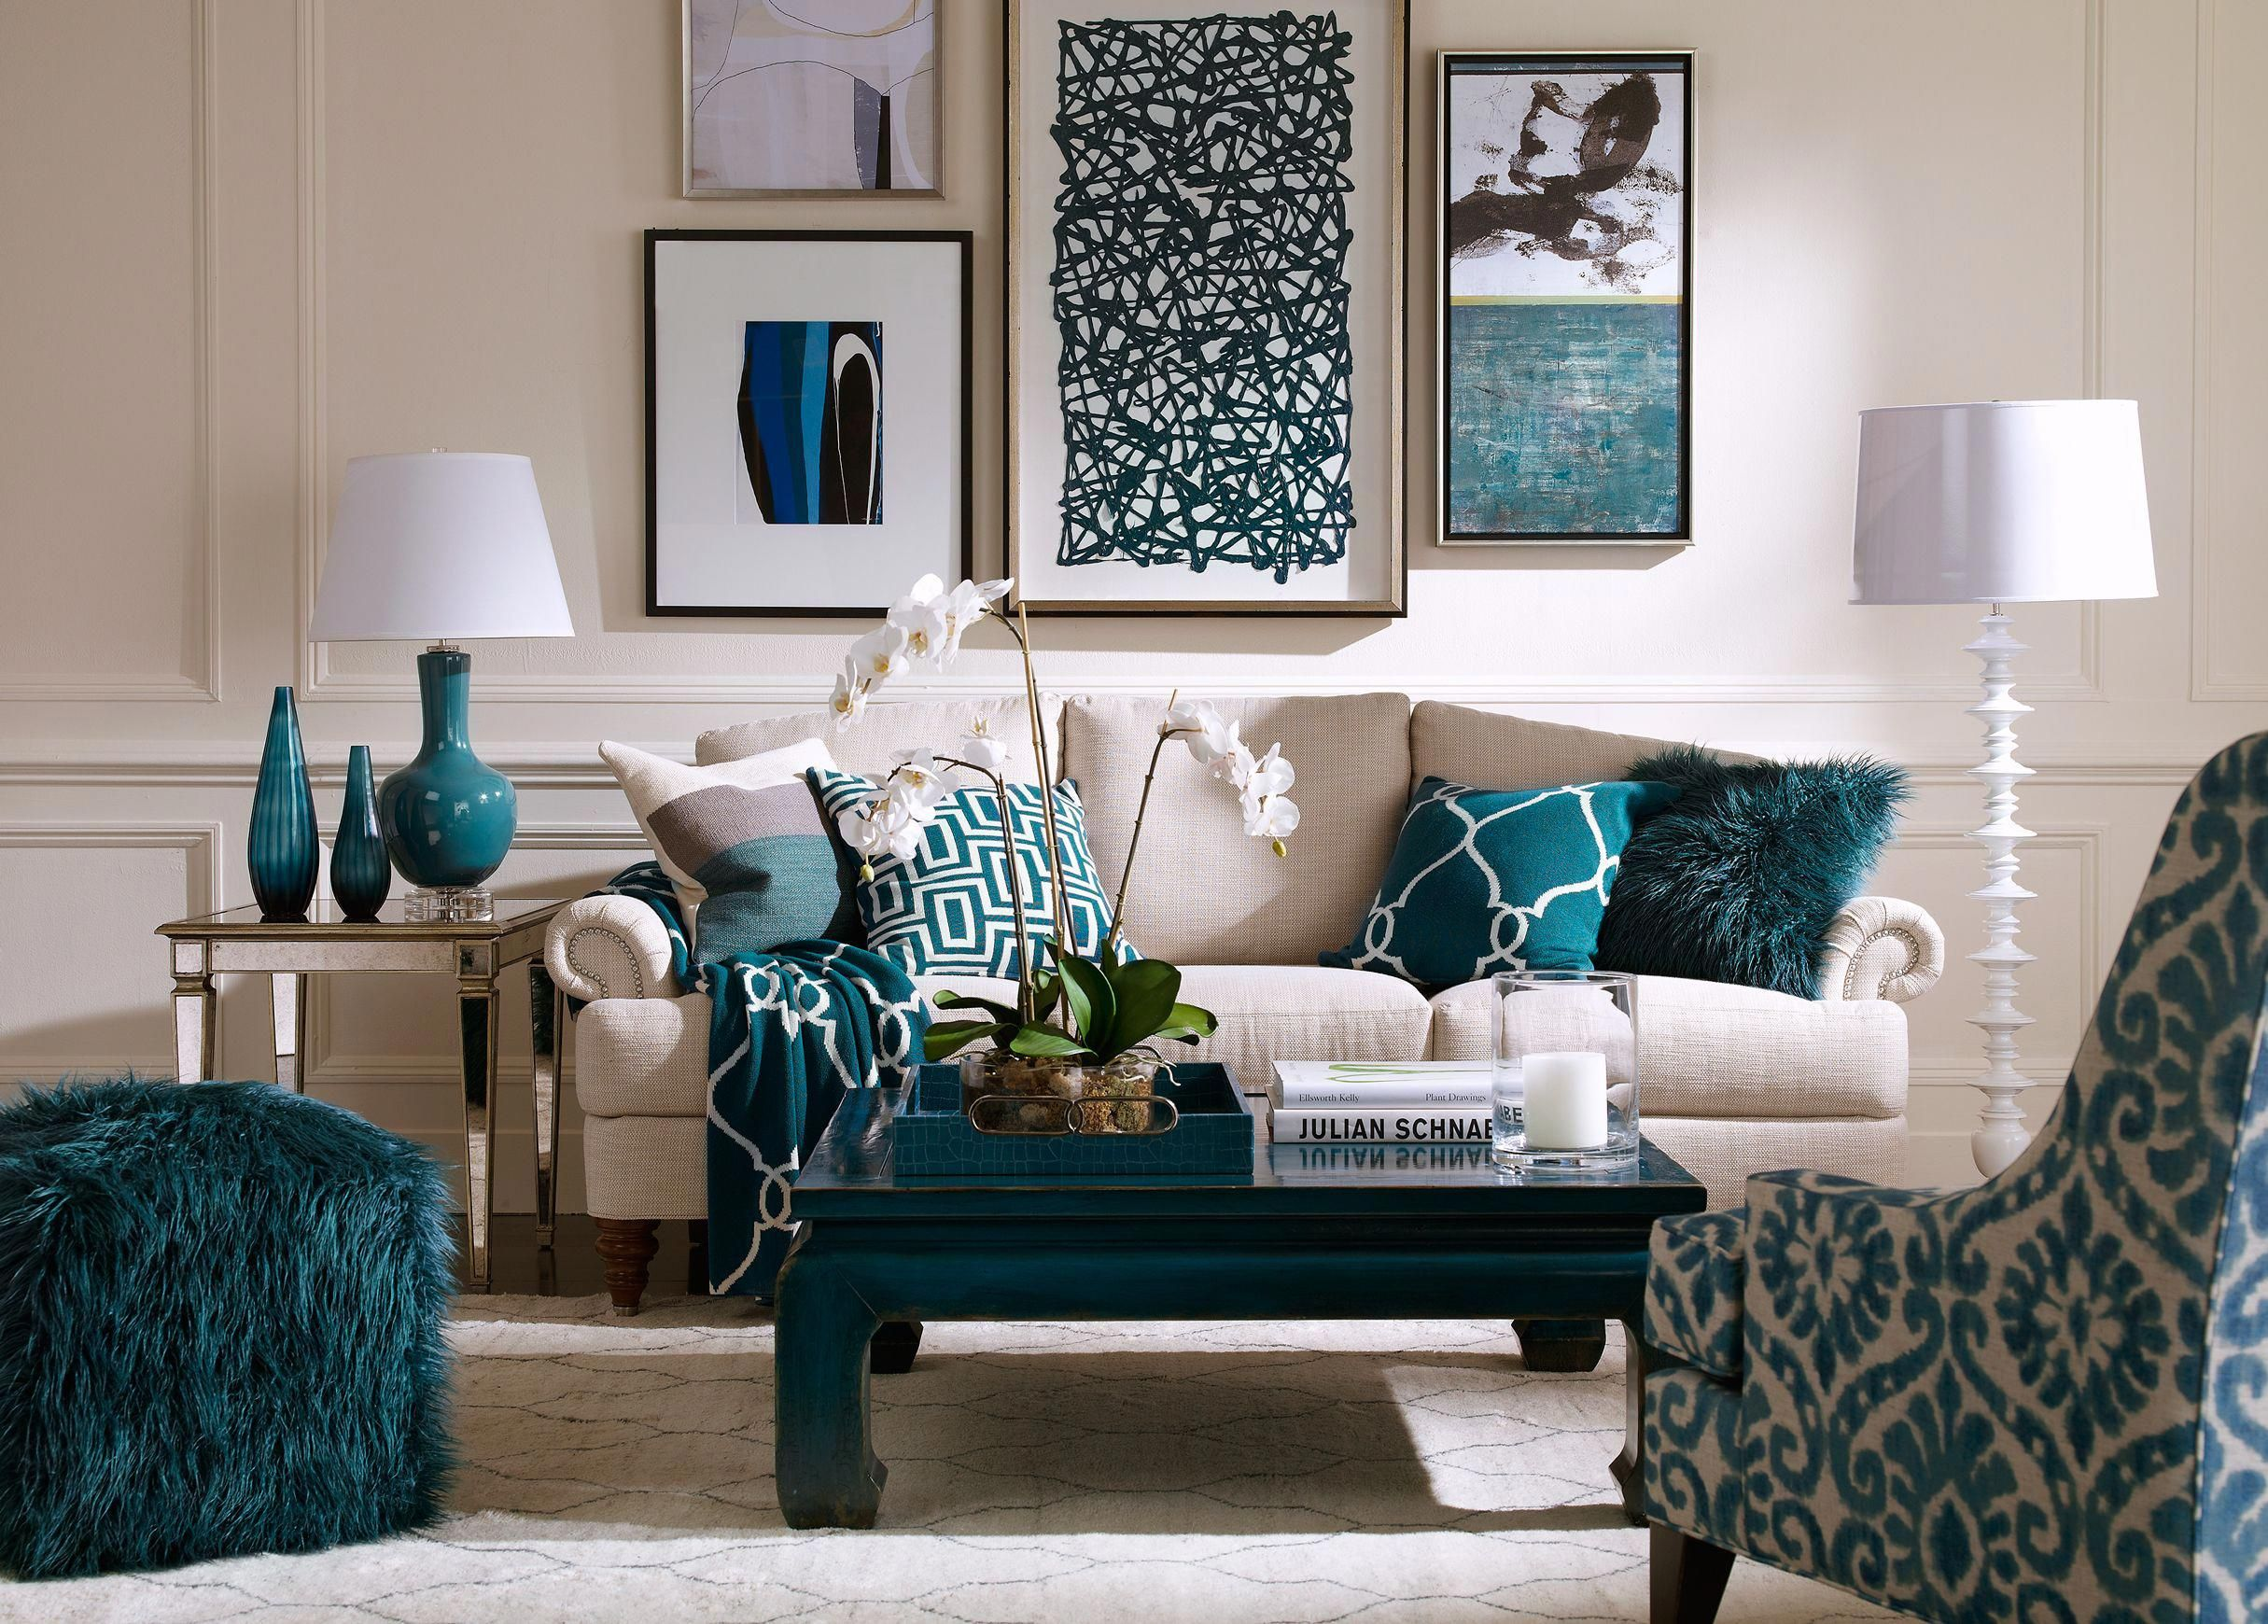 Turquoise Dining Room Ideas Turquoise Rooms Turquoise Living Room Accessories Using Turquois Living Room Turquoise Teal Living Rooms Living Room Accessories